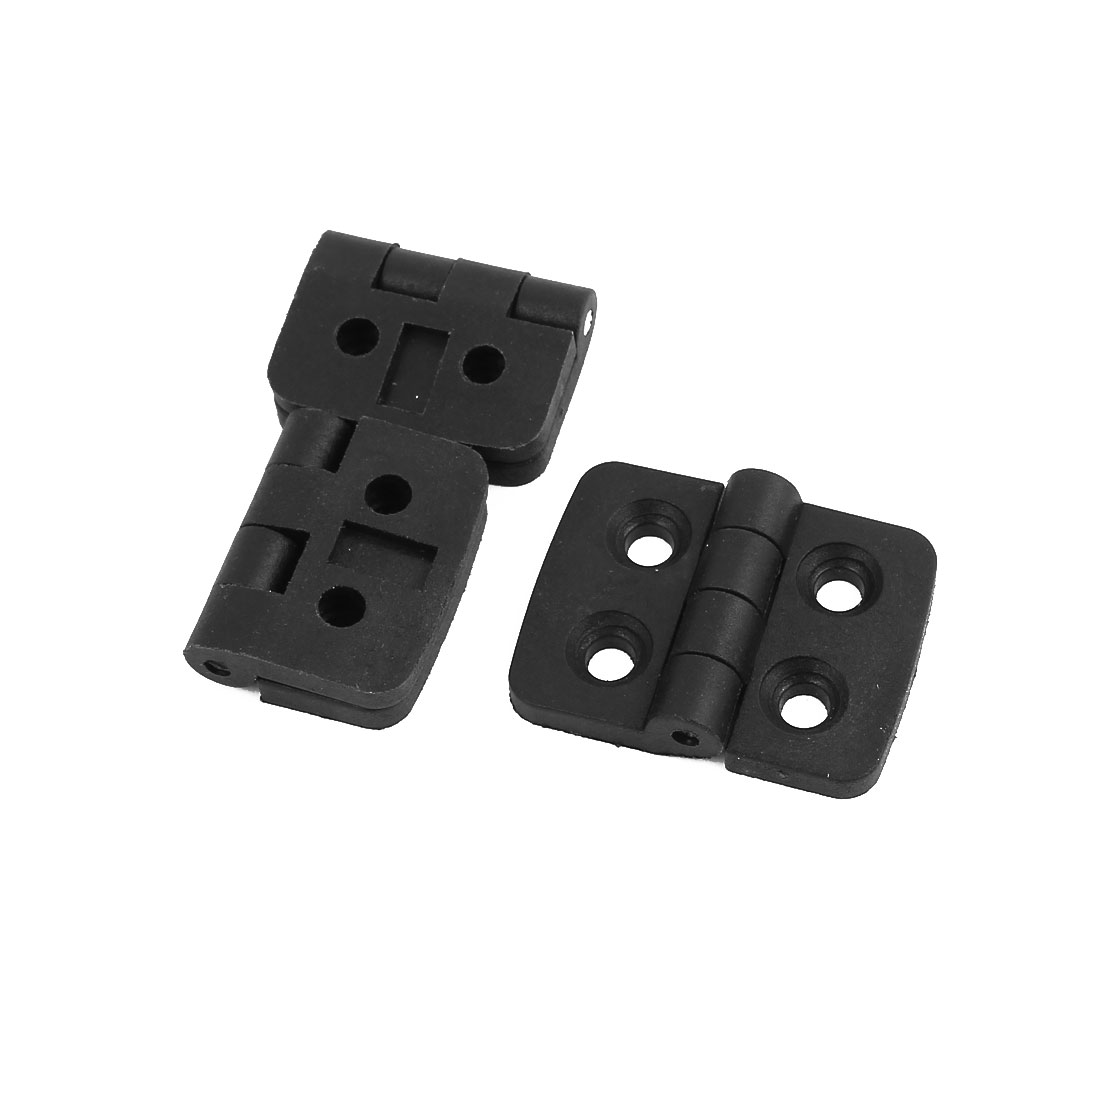 40mm x 30mm Plastic Foldable Hinge Black 3pcs for Home Door